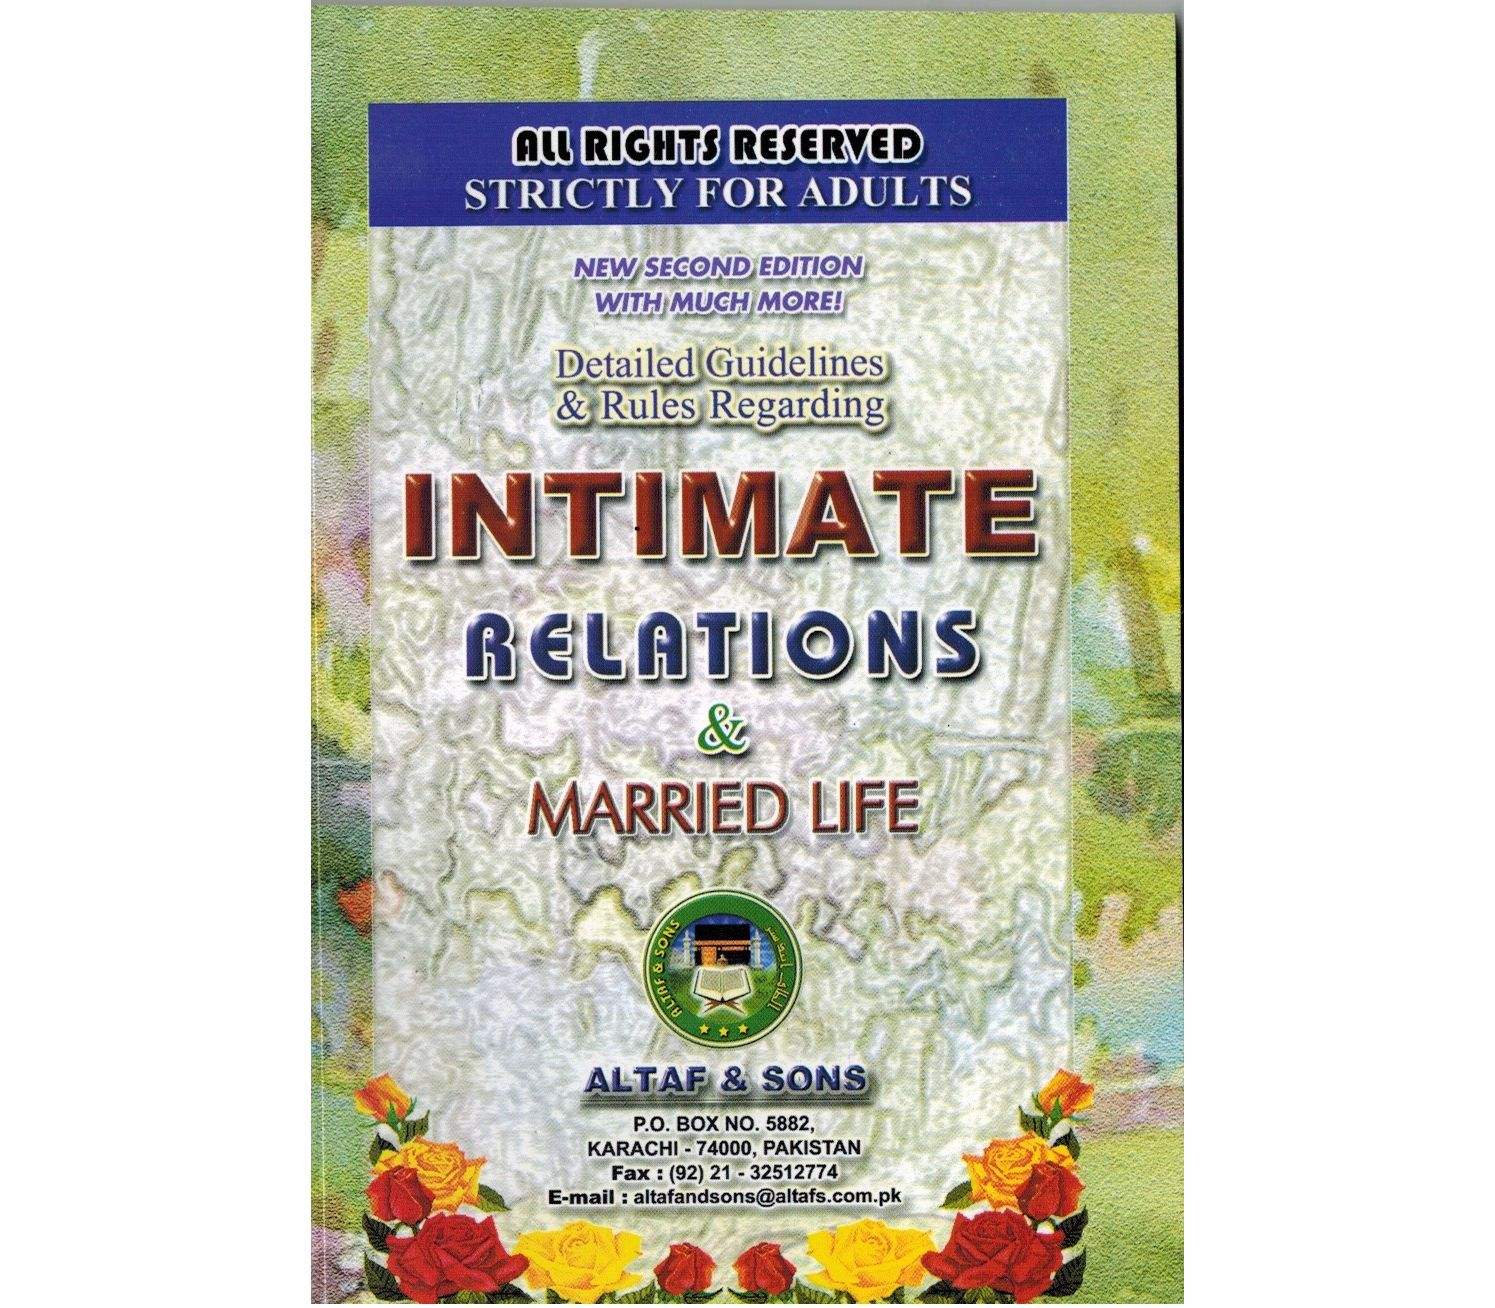 Sexual Relations and Married Life